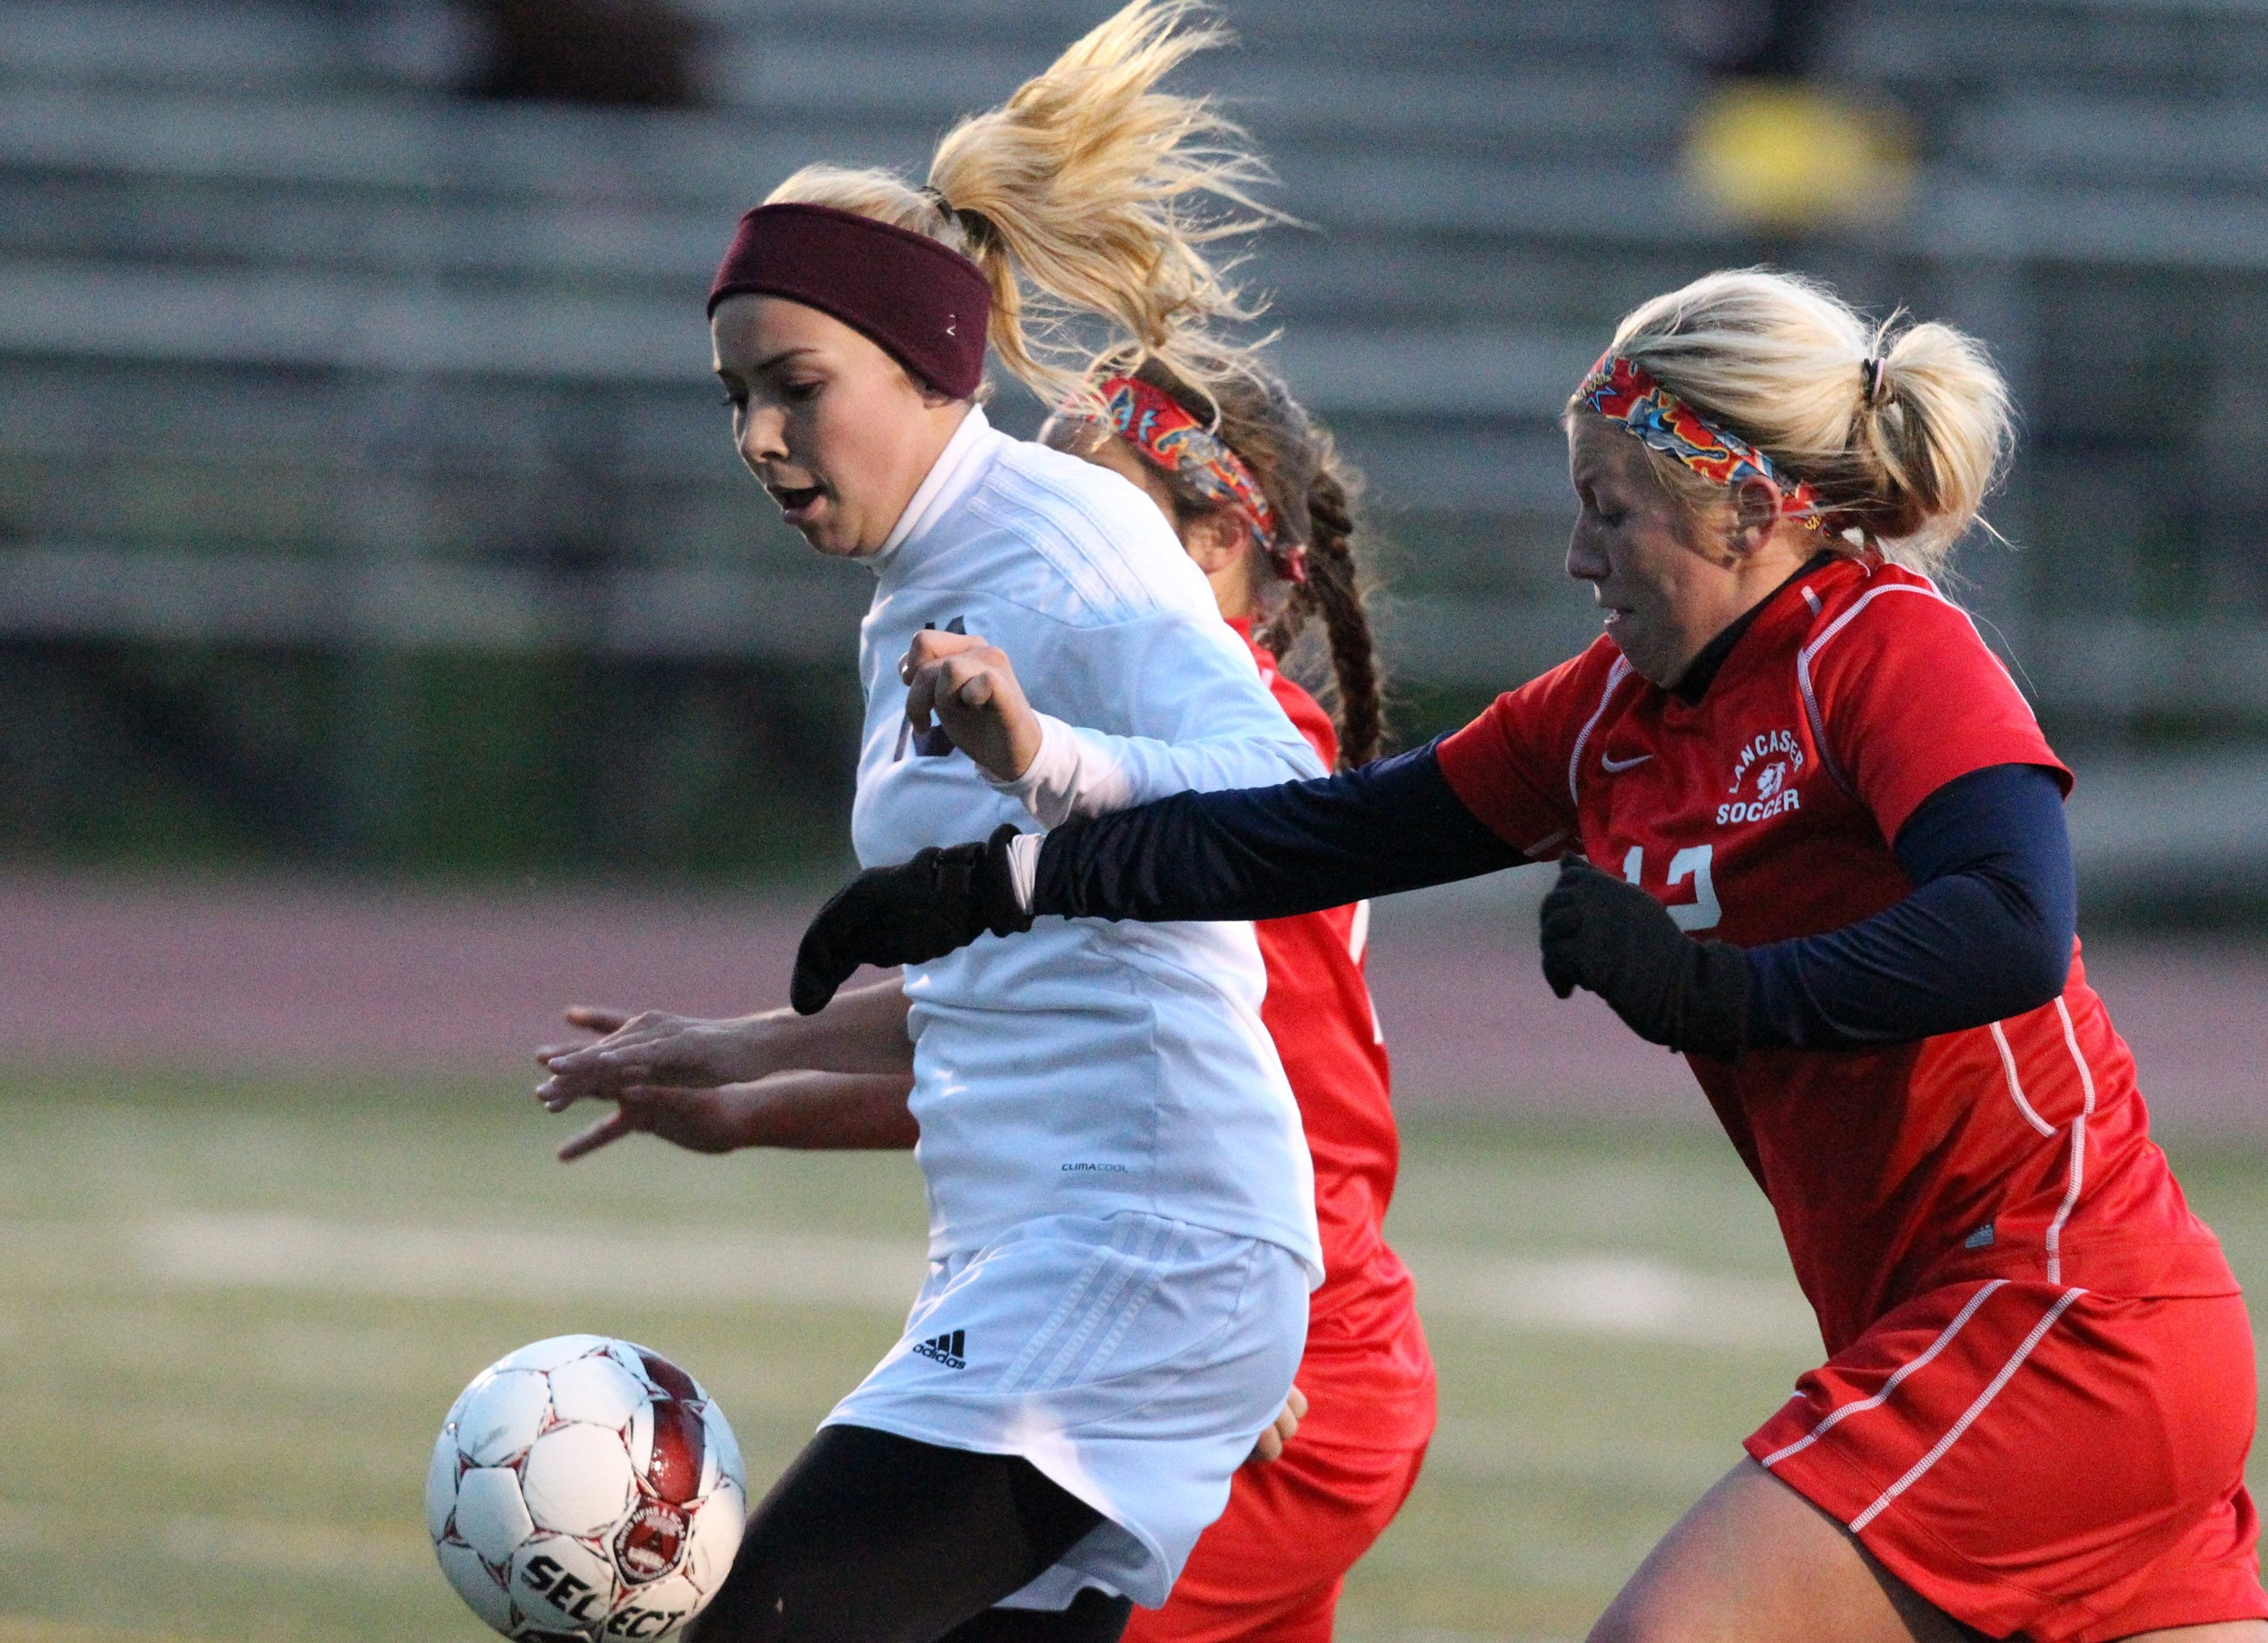 Orchard Park's Sarah Gaczewski battles Lancaster's Danielle Zale for the ball in the first half of the Quakers' 4-0 win.